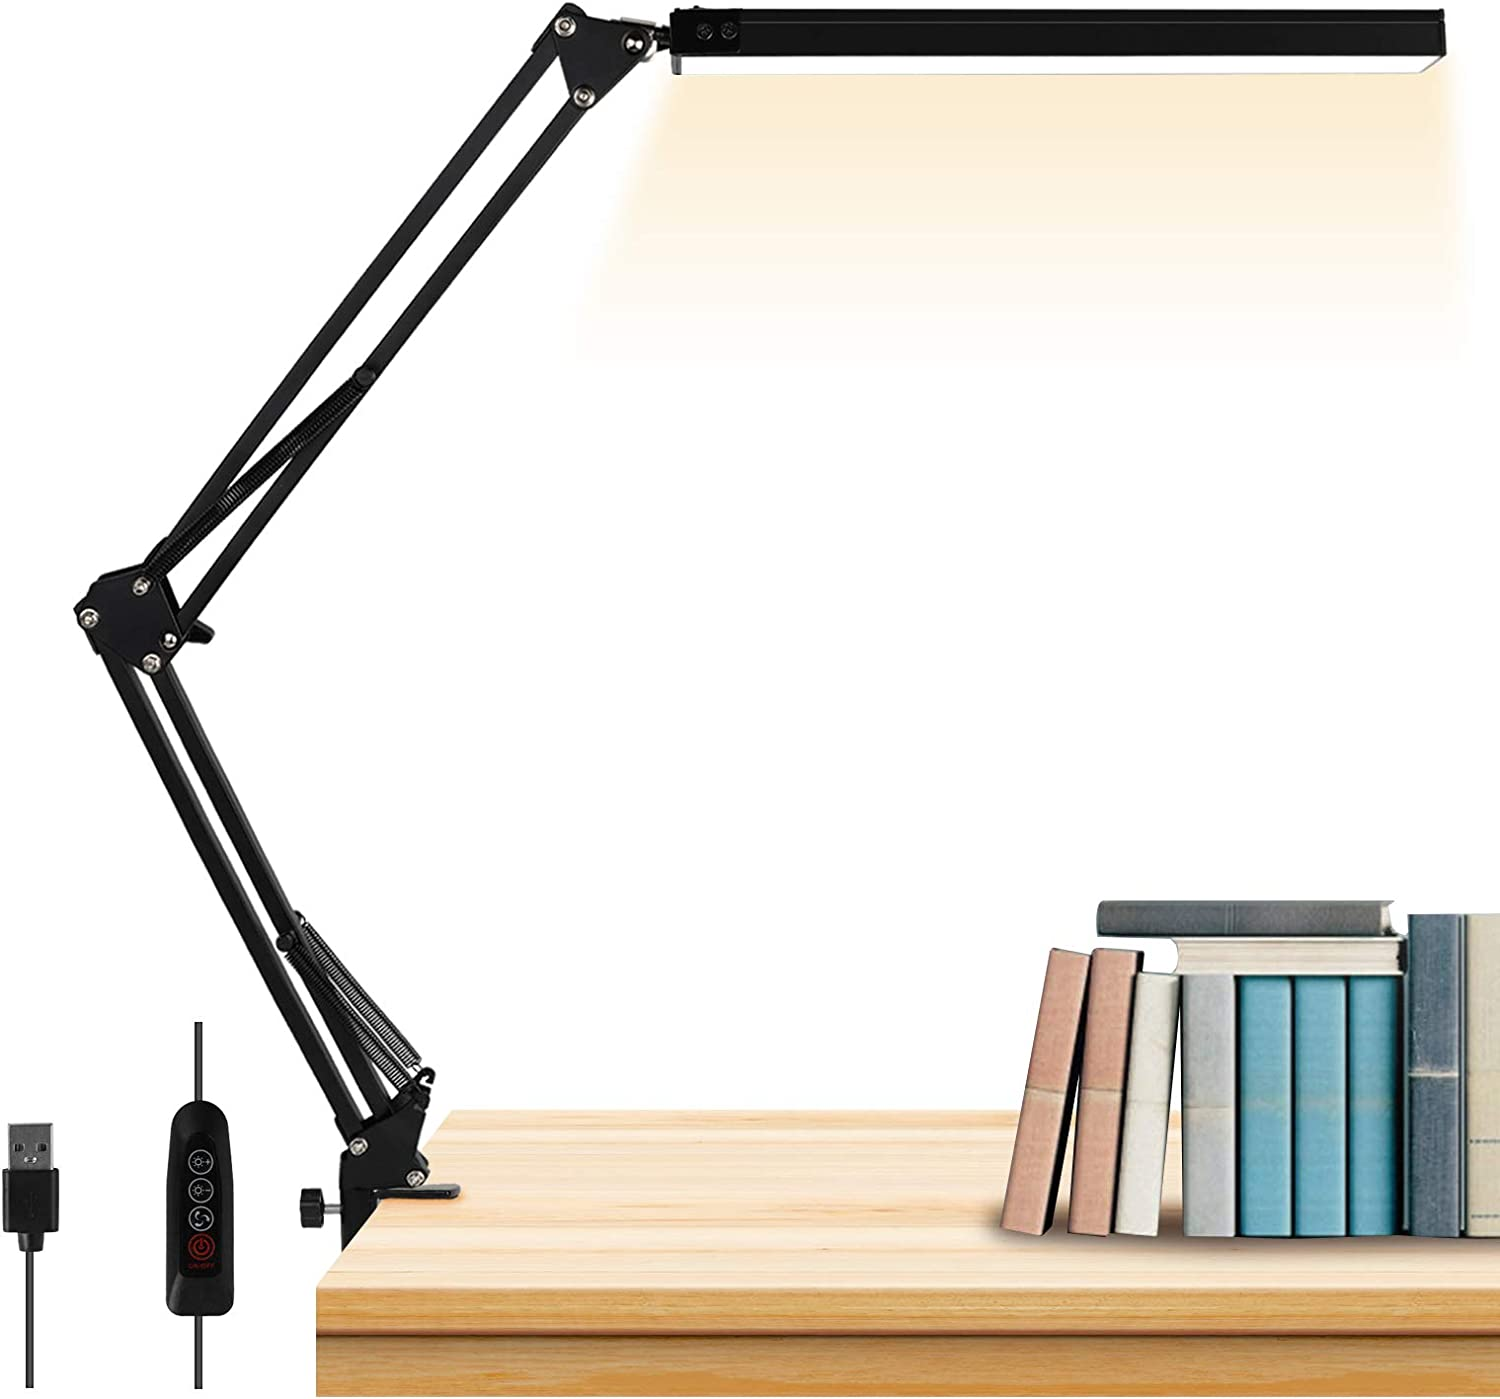 LED Desk Lamp, AXUF Metal Swing Arm Desk Lamp with Clamp, Eye-Caring Modern Architect Task Lamp, Dimmable Office Table Lamp with 3 Color Modes 10 Brightness Levels & Adapter, Memory Function,14W-Black